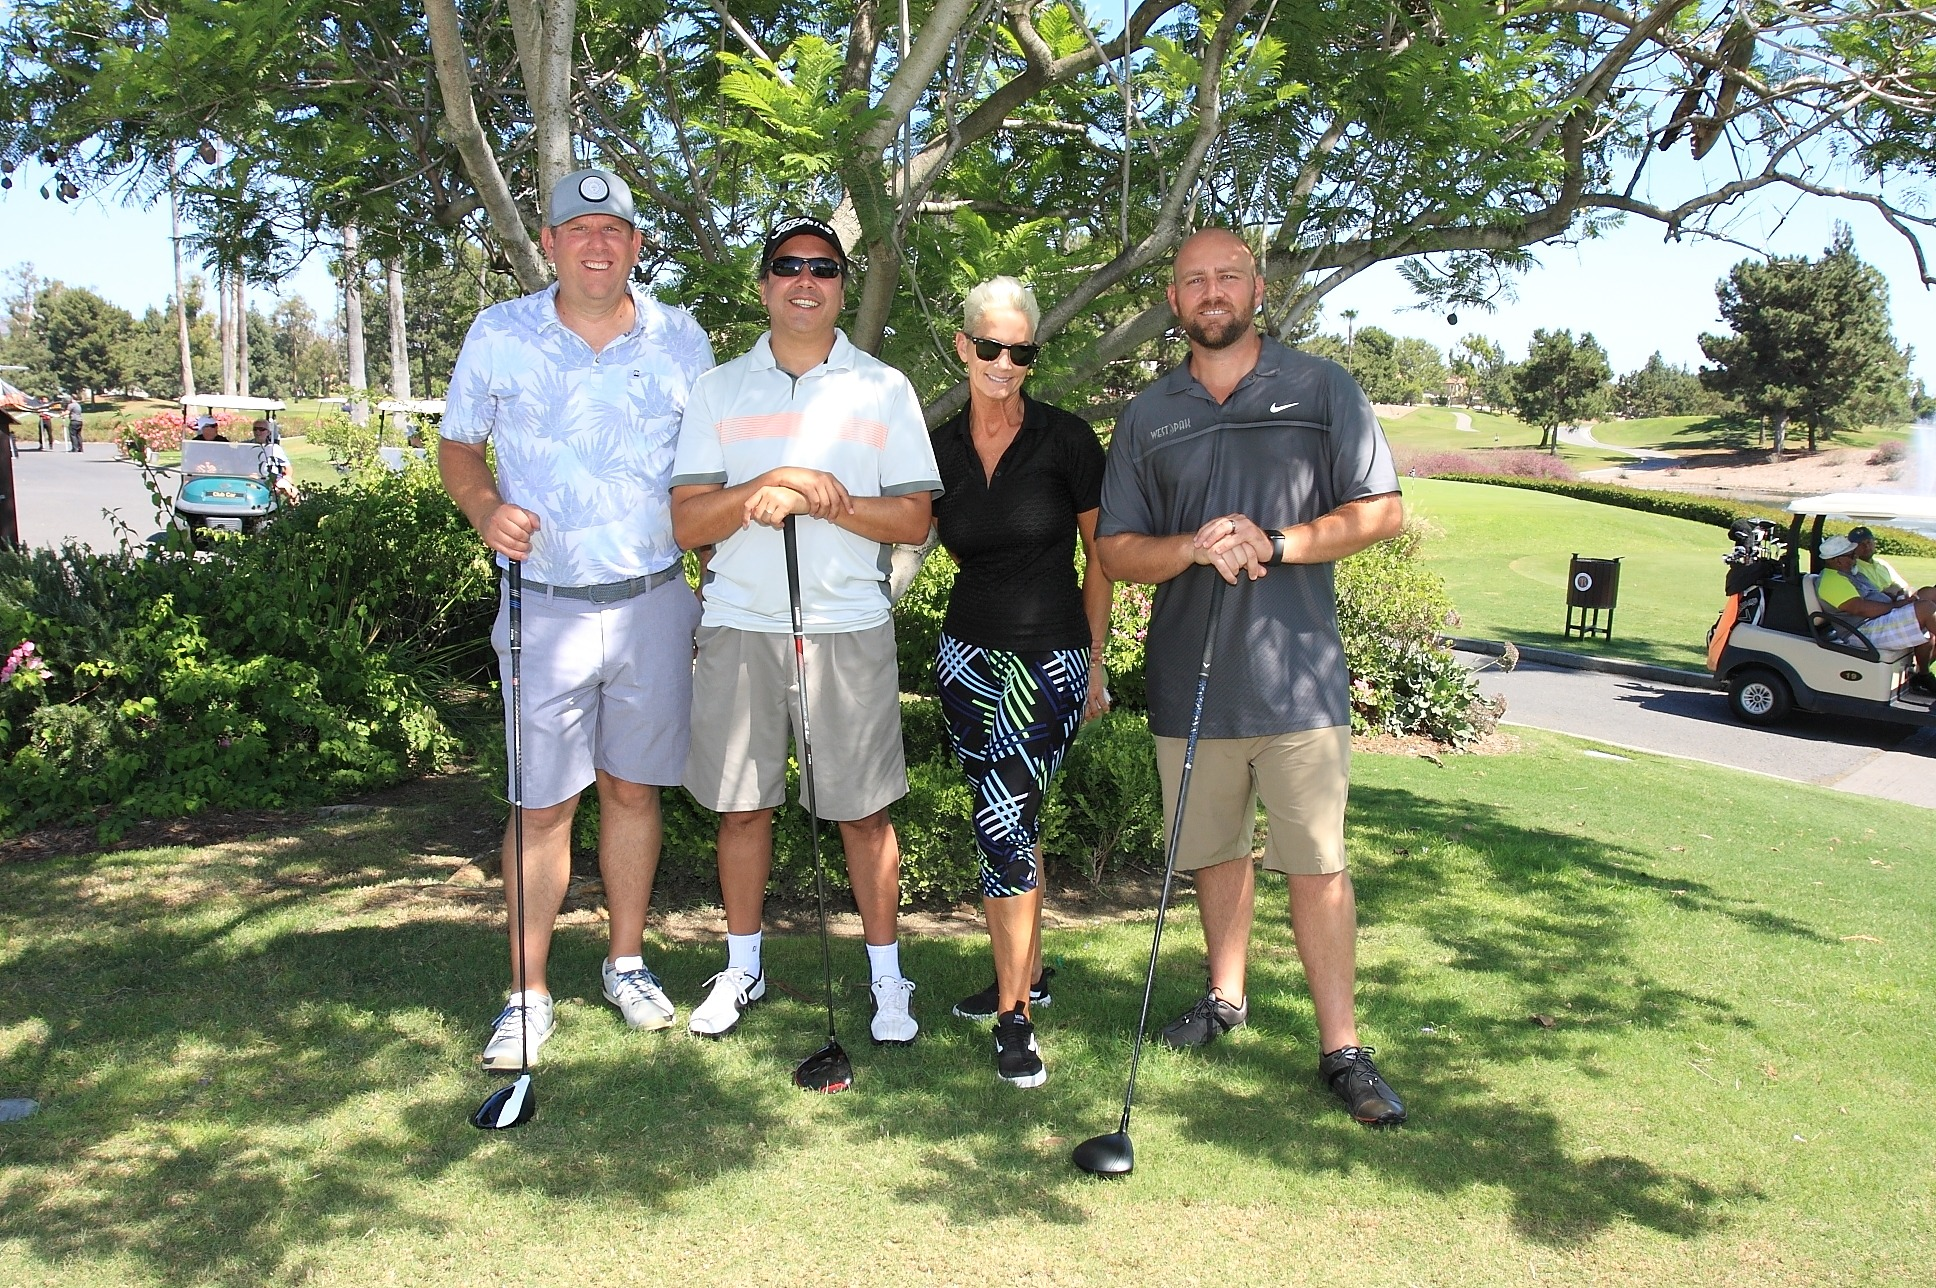 1st Place Foursome Team Chad Miller, Felipe Villa, Susie Rea and Heath Shoup of West Pak Avocado.